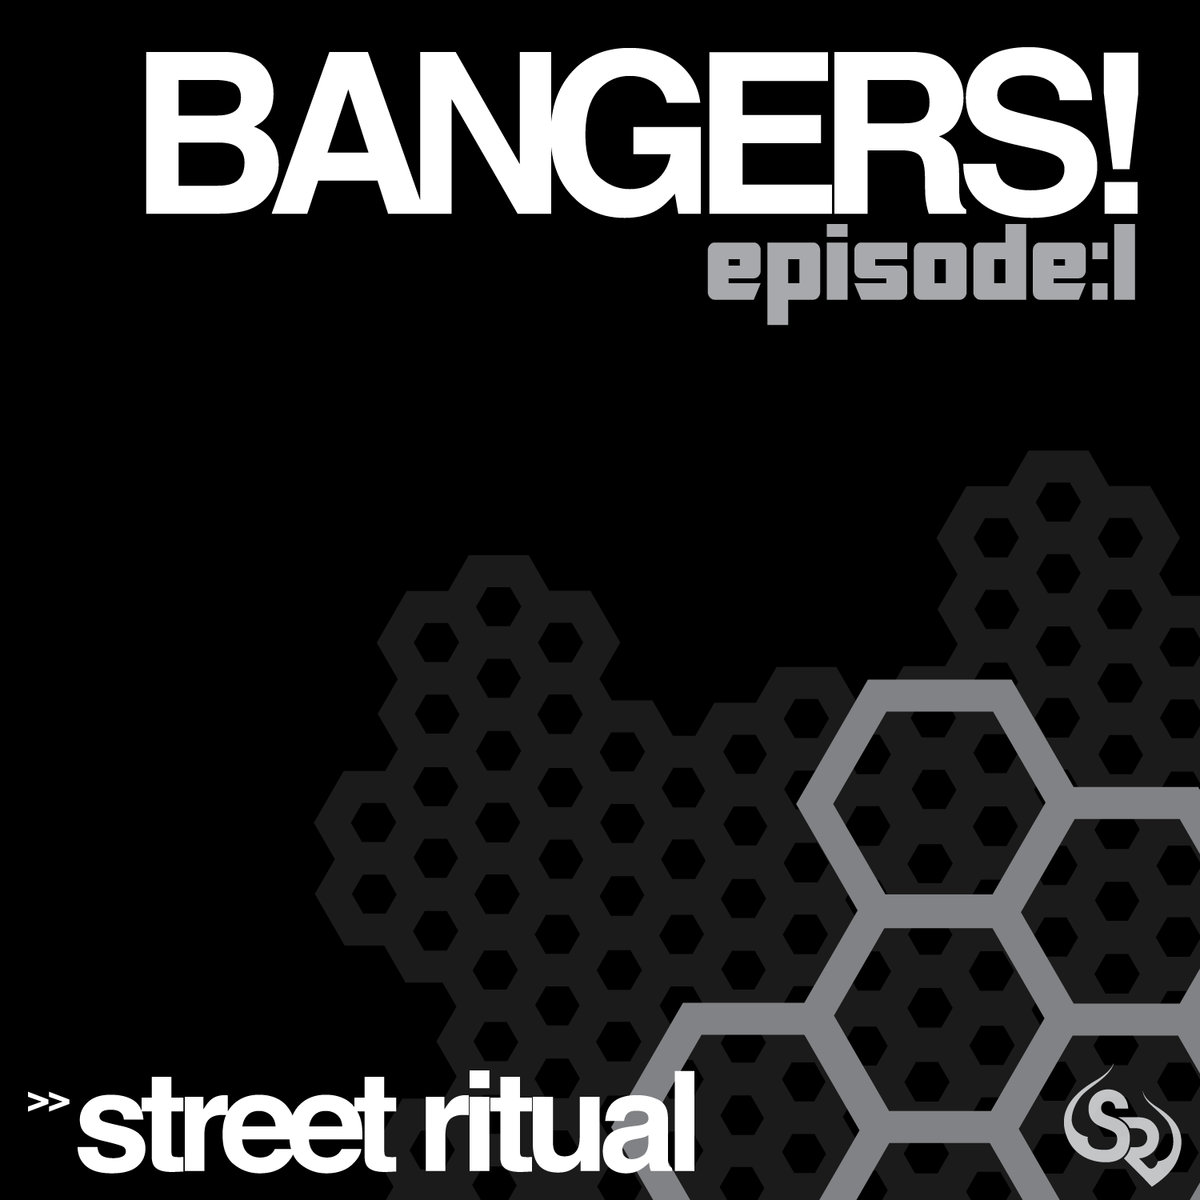 Rebirth - Alive @ 'Various Artists - Bangers! Episode:1' album (bass, electronic)